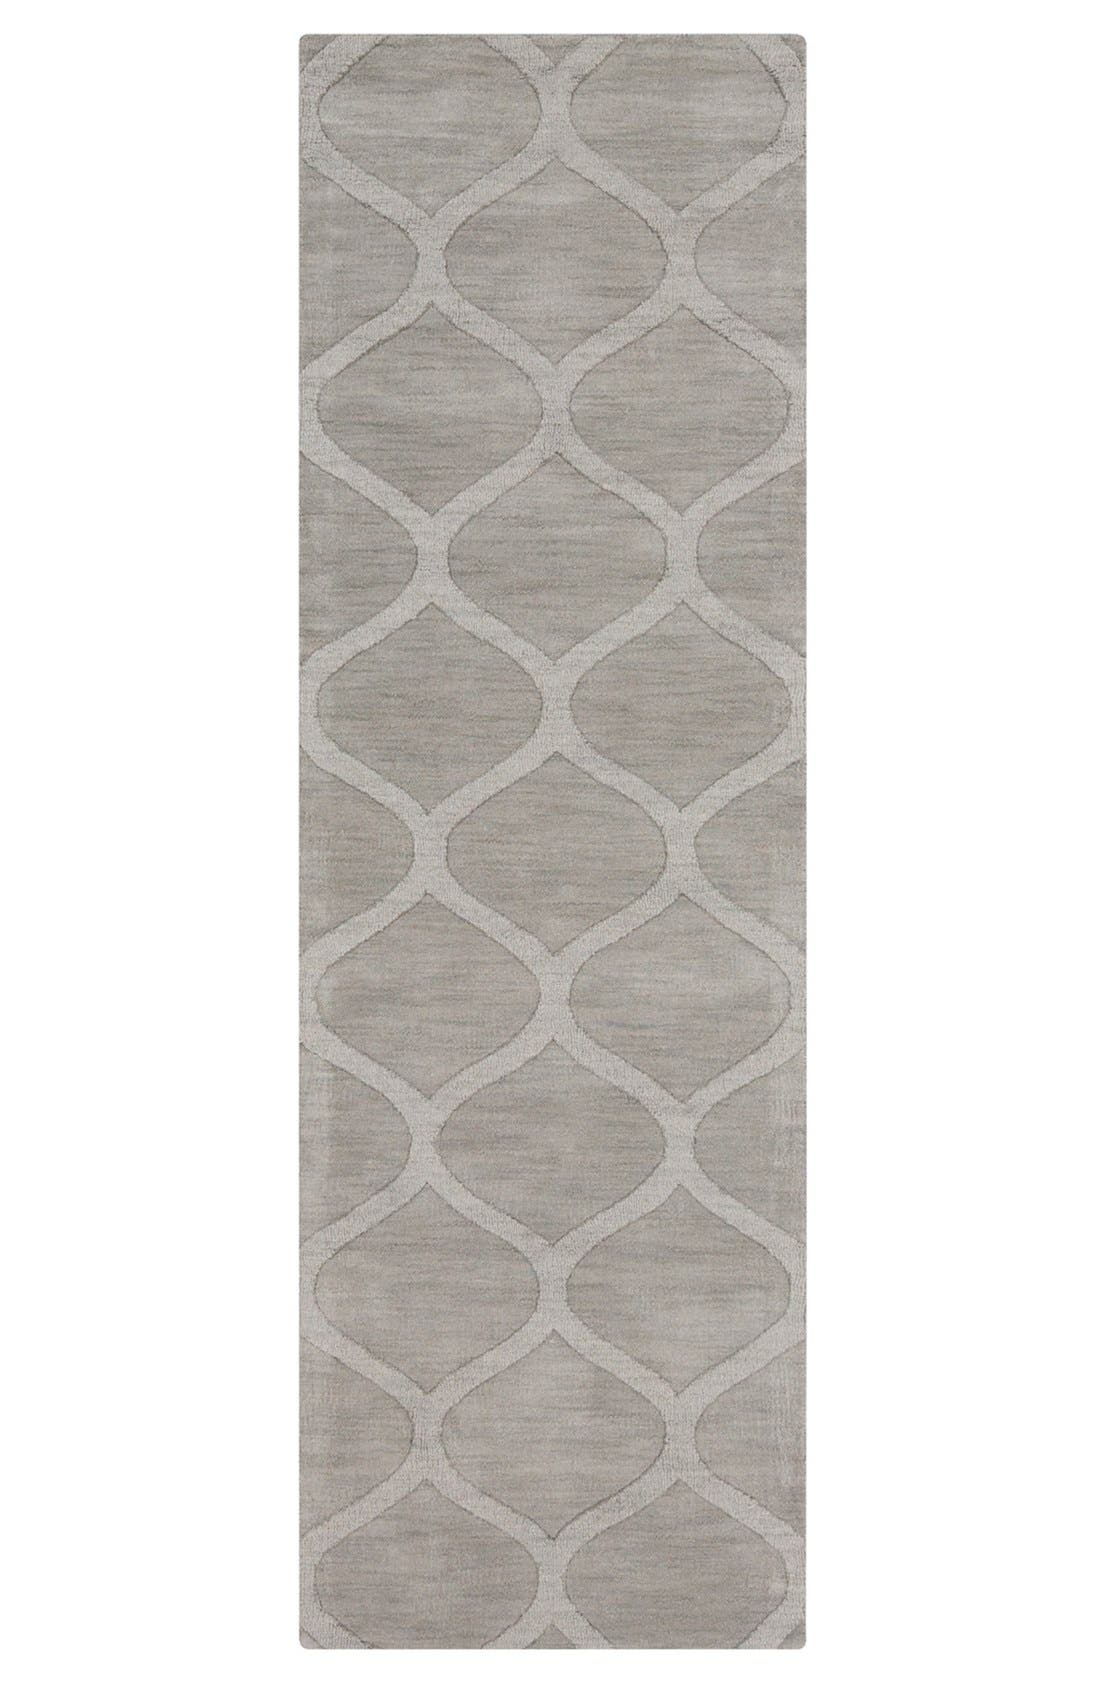 SURYA HOME,                             'Mystique' Hand Loomed Wool Rug,                             Alternate thumbnail 2, color,                             020